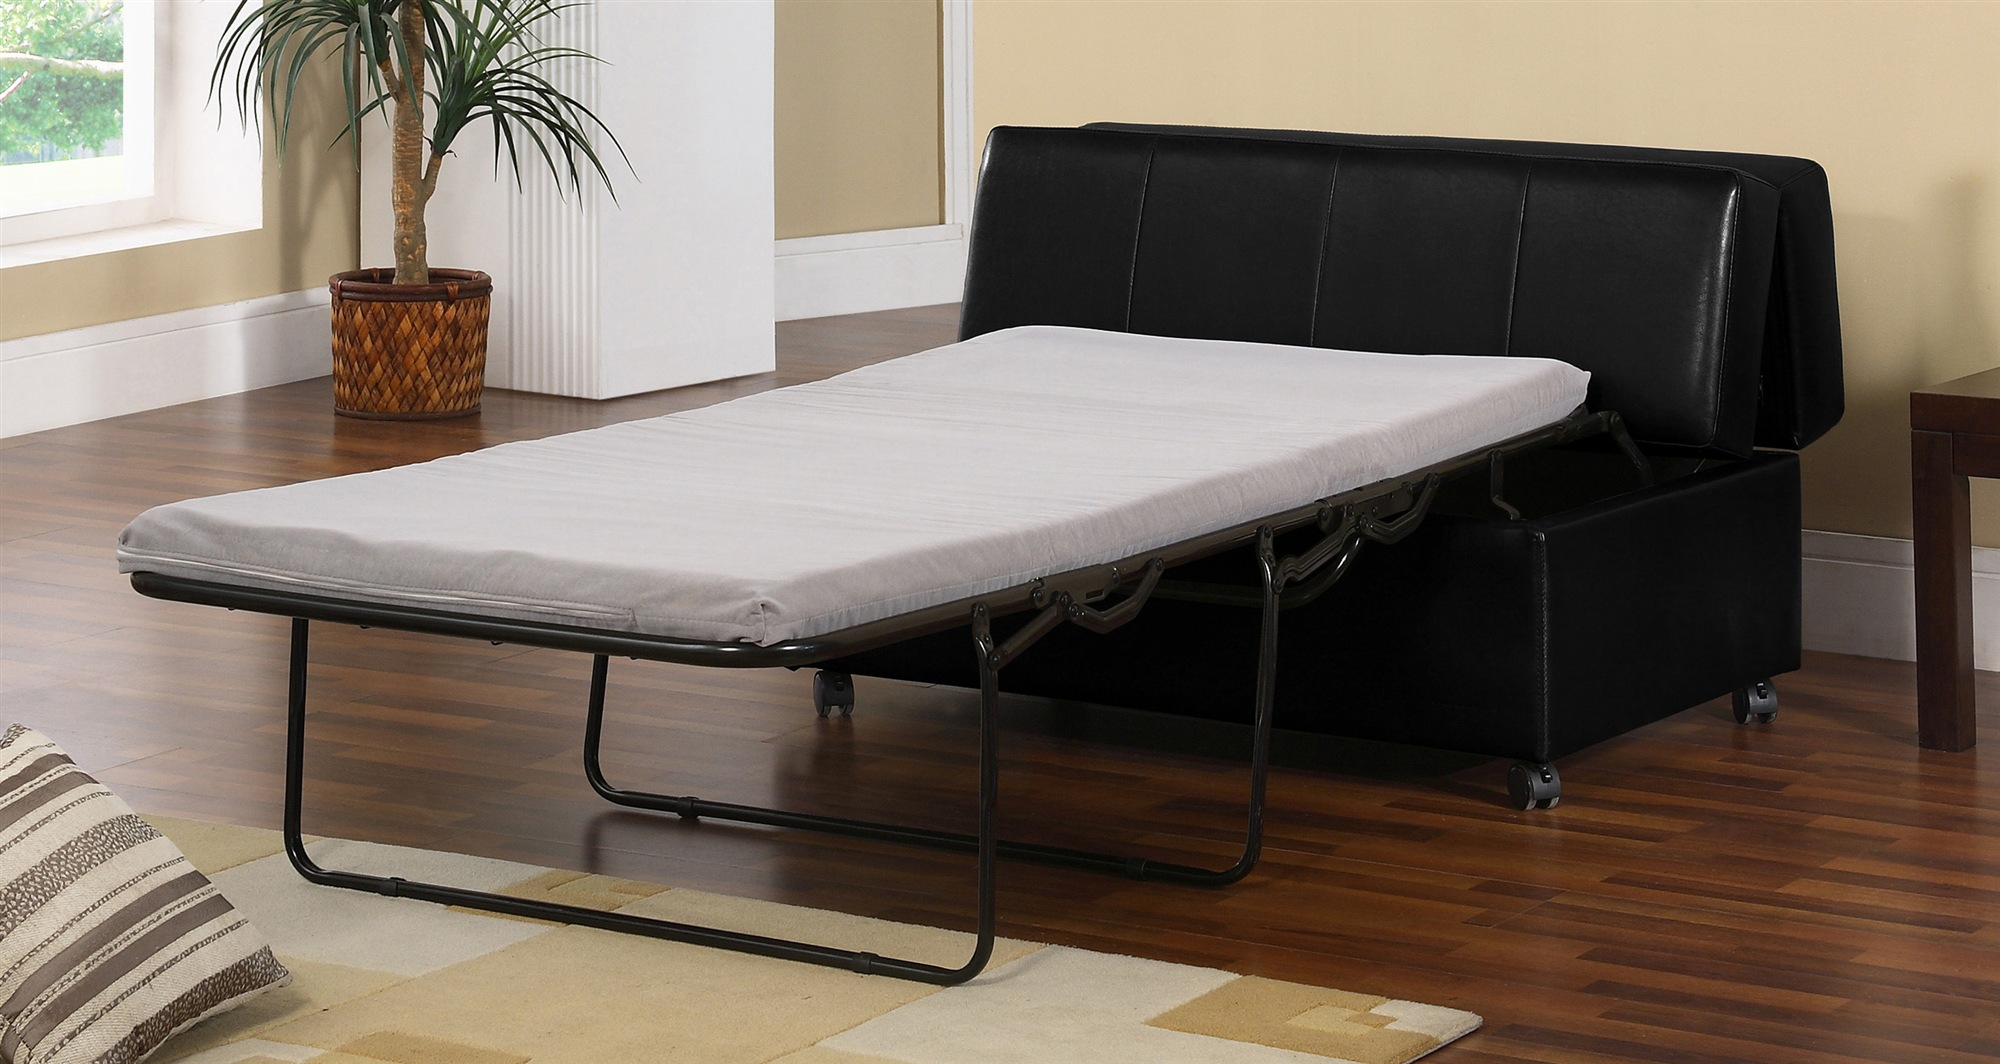 Comfortable Sleeper Cheap Futons In Black And White Theme For Home Furniture Ideas